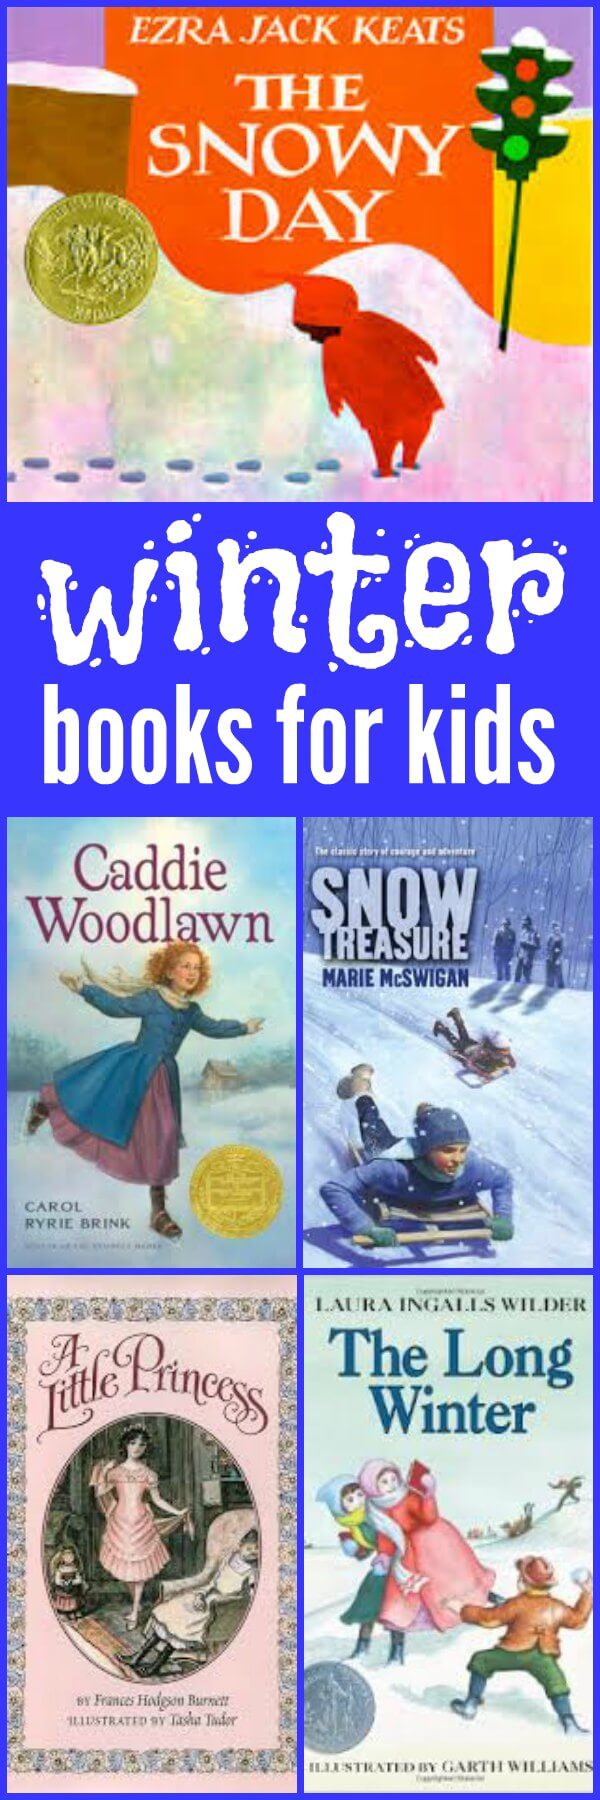 Winter is a great time to curl up with your kids and a good read aloud. Here are my favorite winter books for kids - perfect for that snowy afternoon.